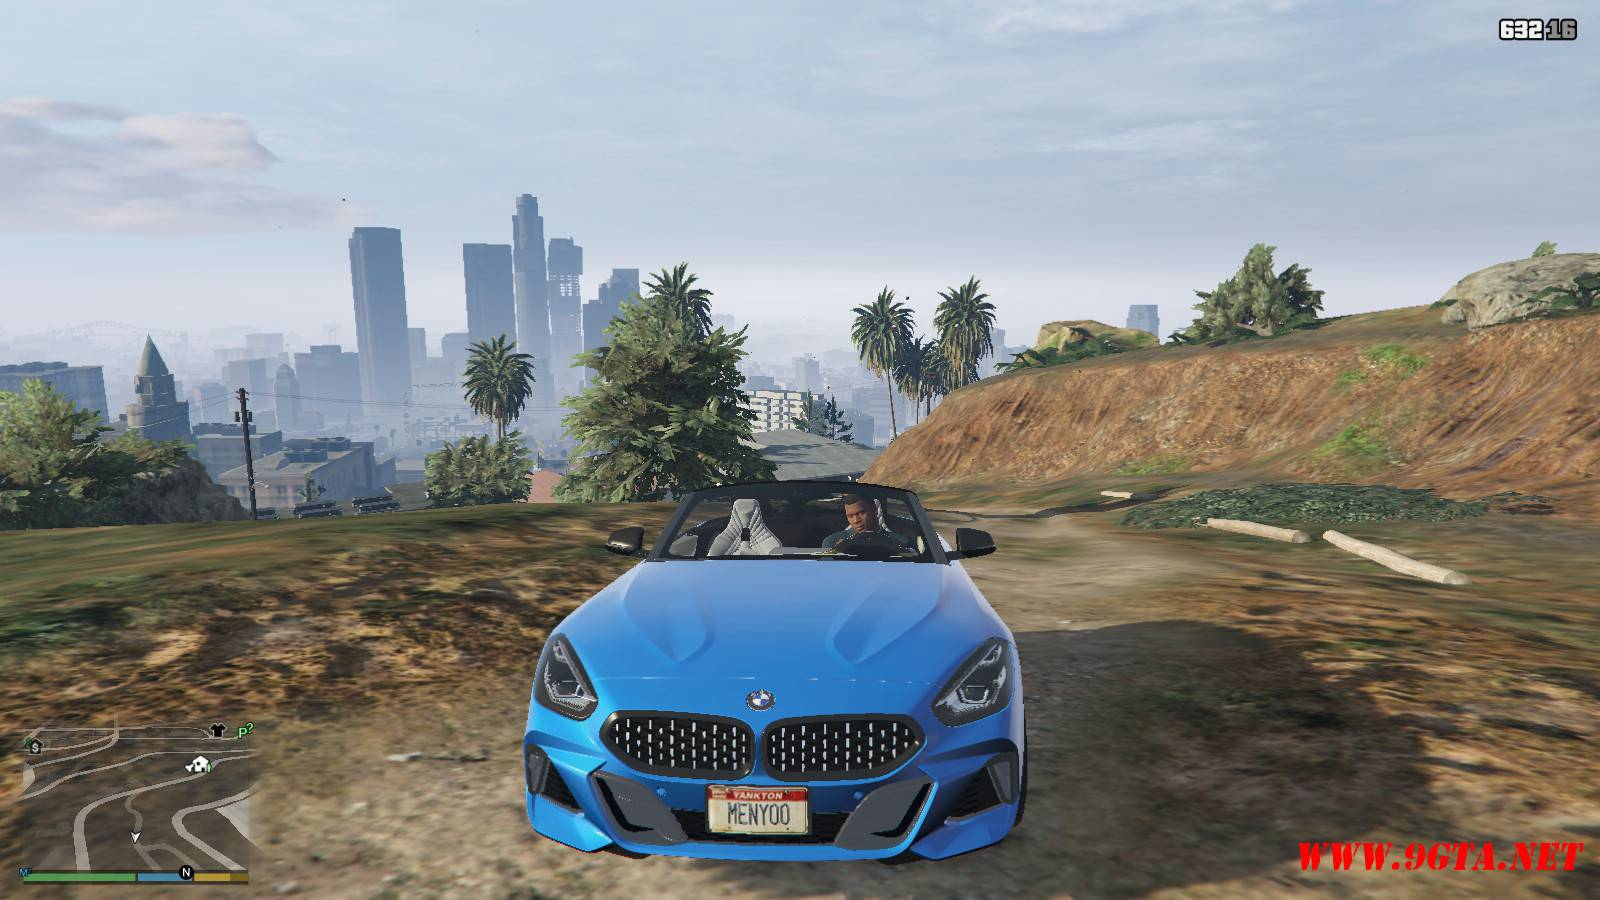 2019 BMW Z4 M40i v2.0 Mod For GTA5 (9)